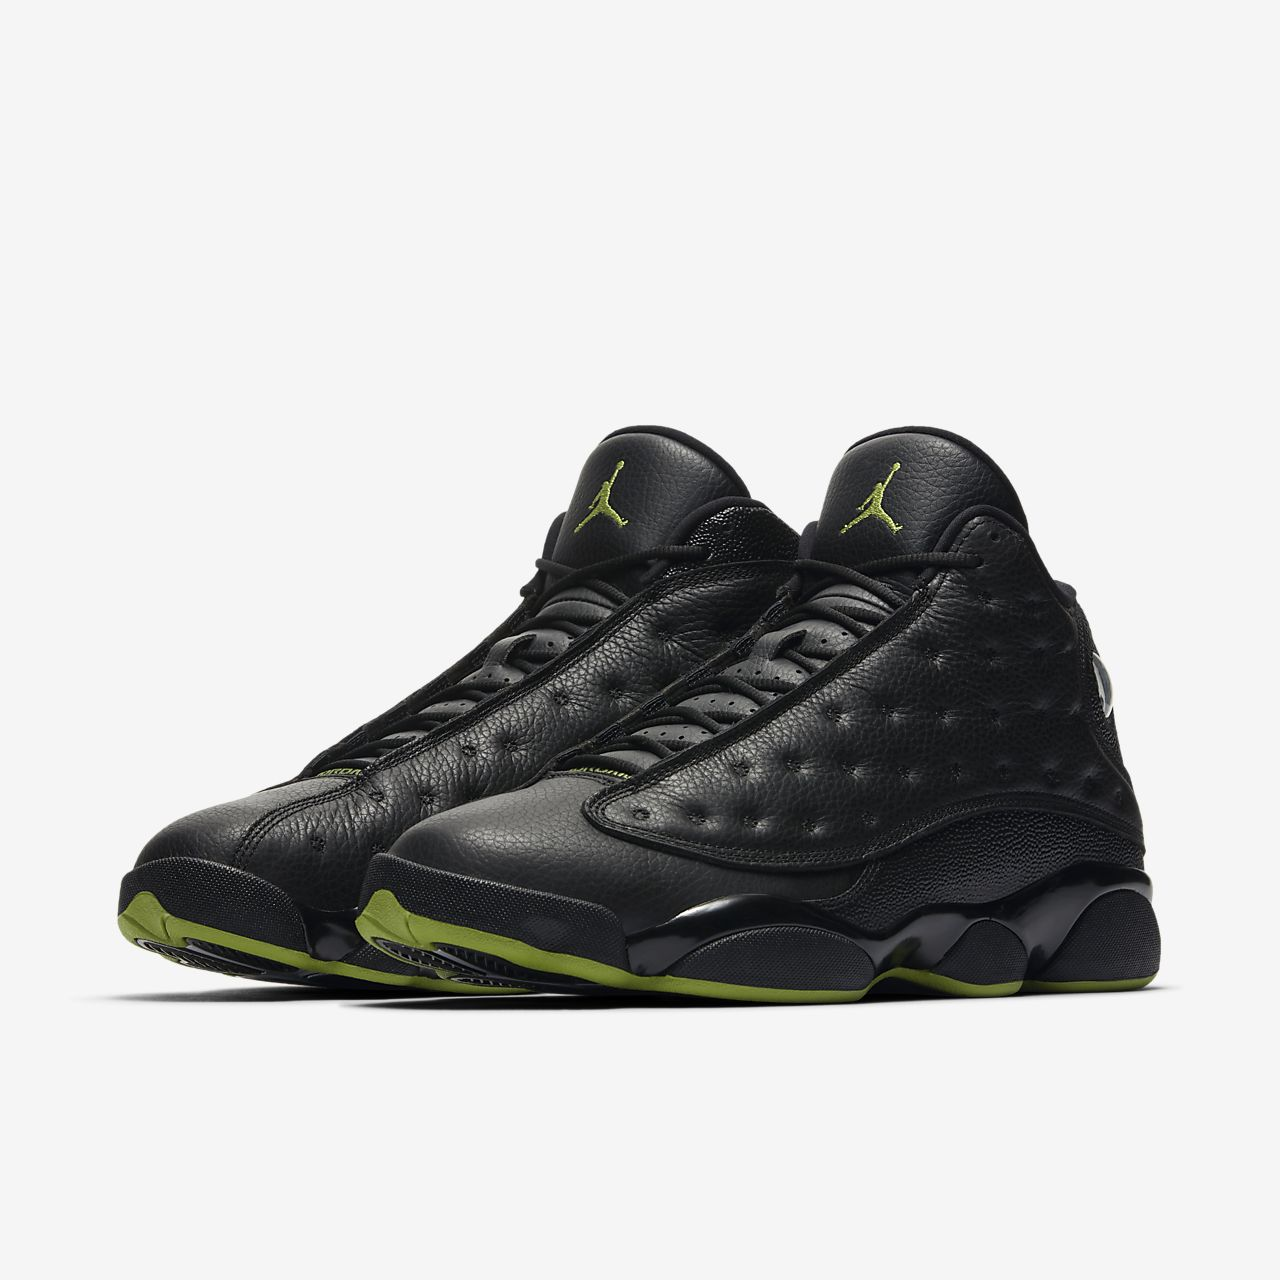 air jordan 13 retro men's basketball shoes